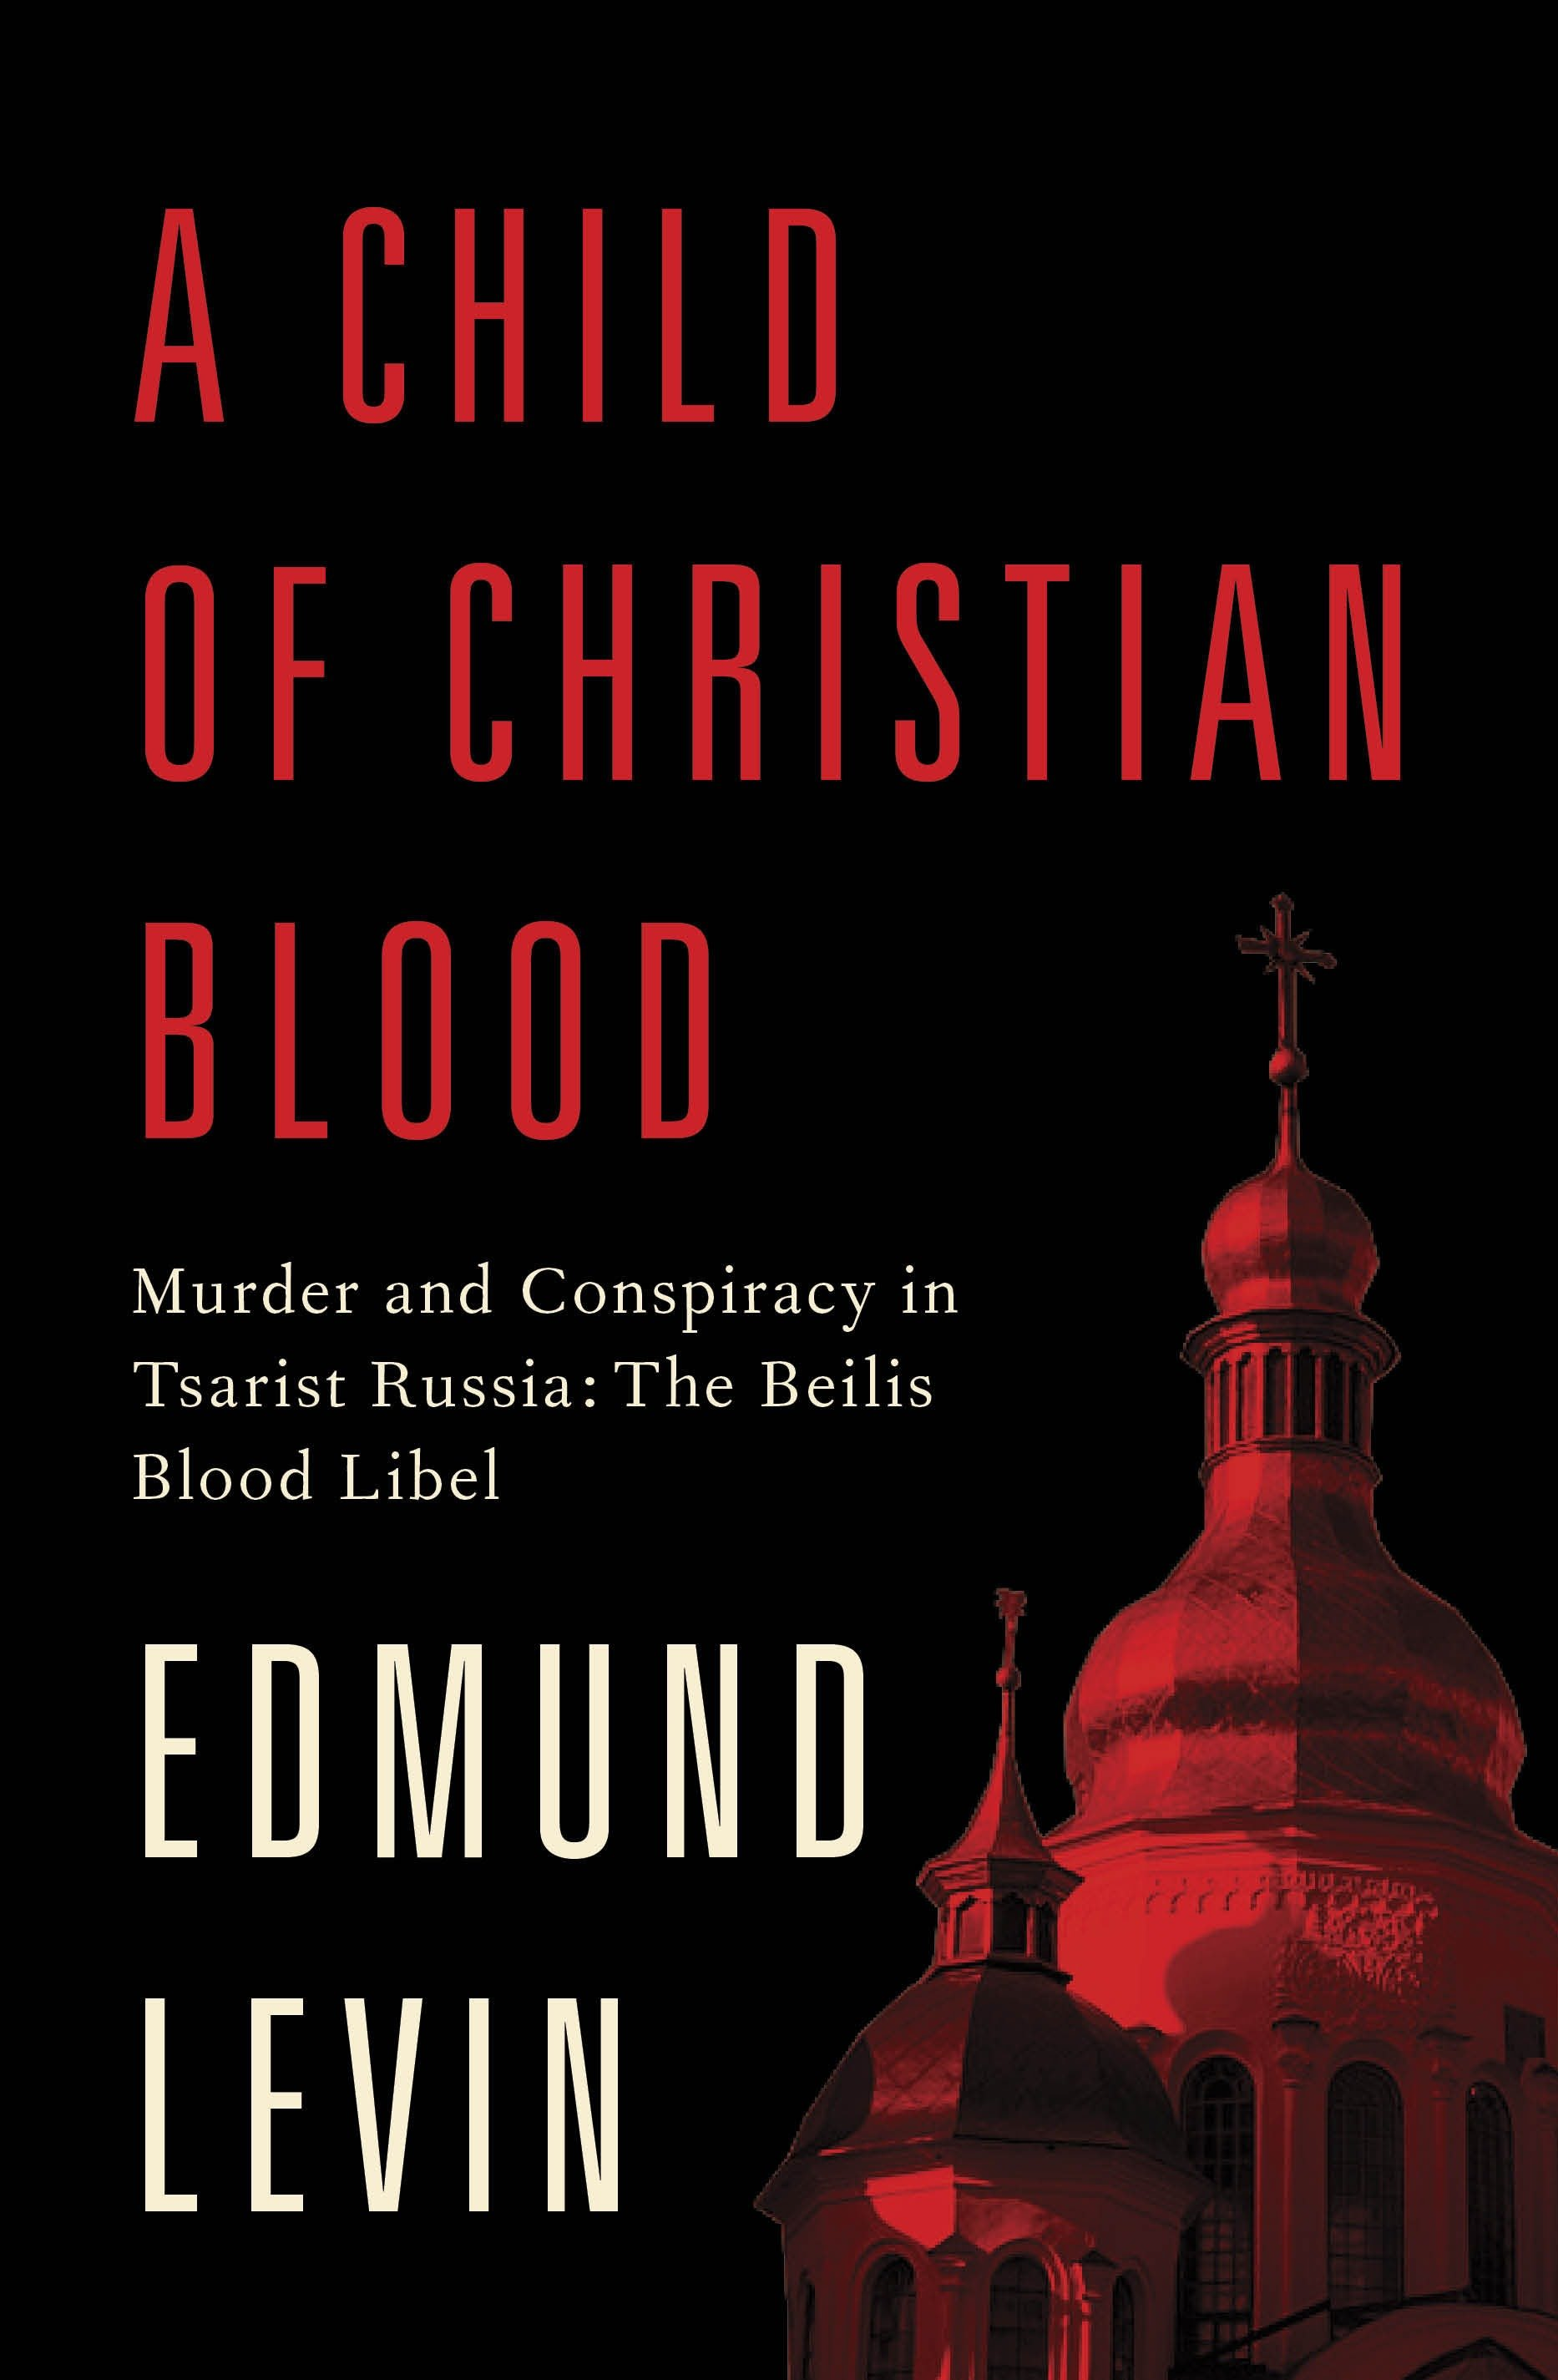 A Child of Christian Blood Murder and Conspiracy in Tsarist Russia: The Beilis Blood Libel